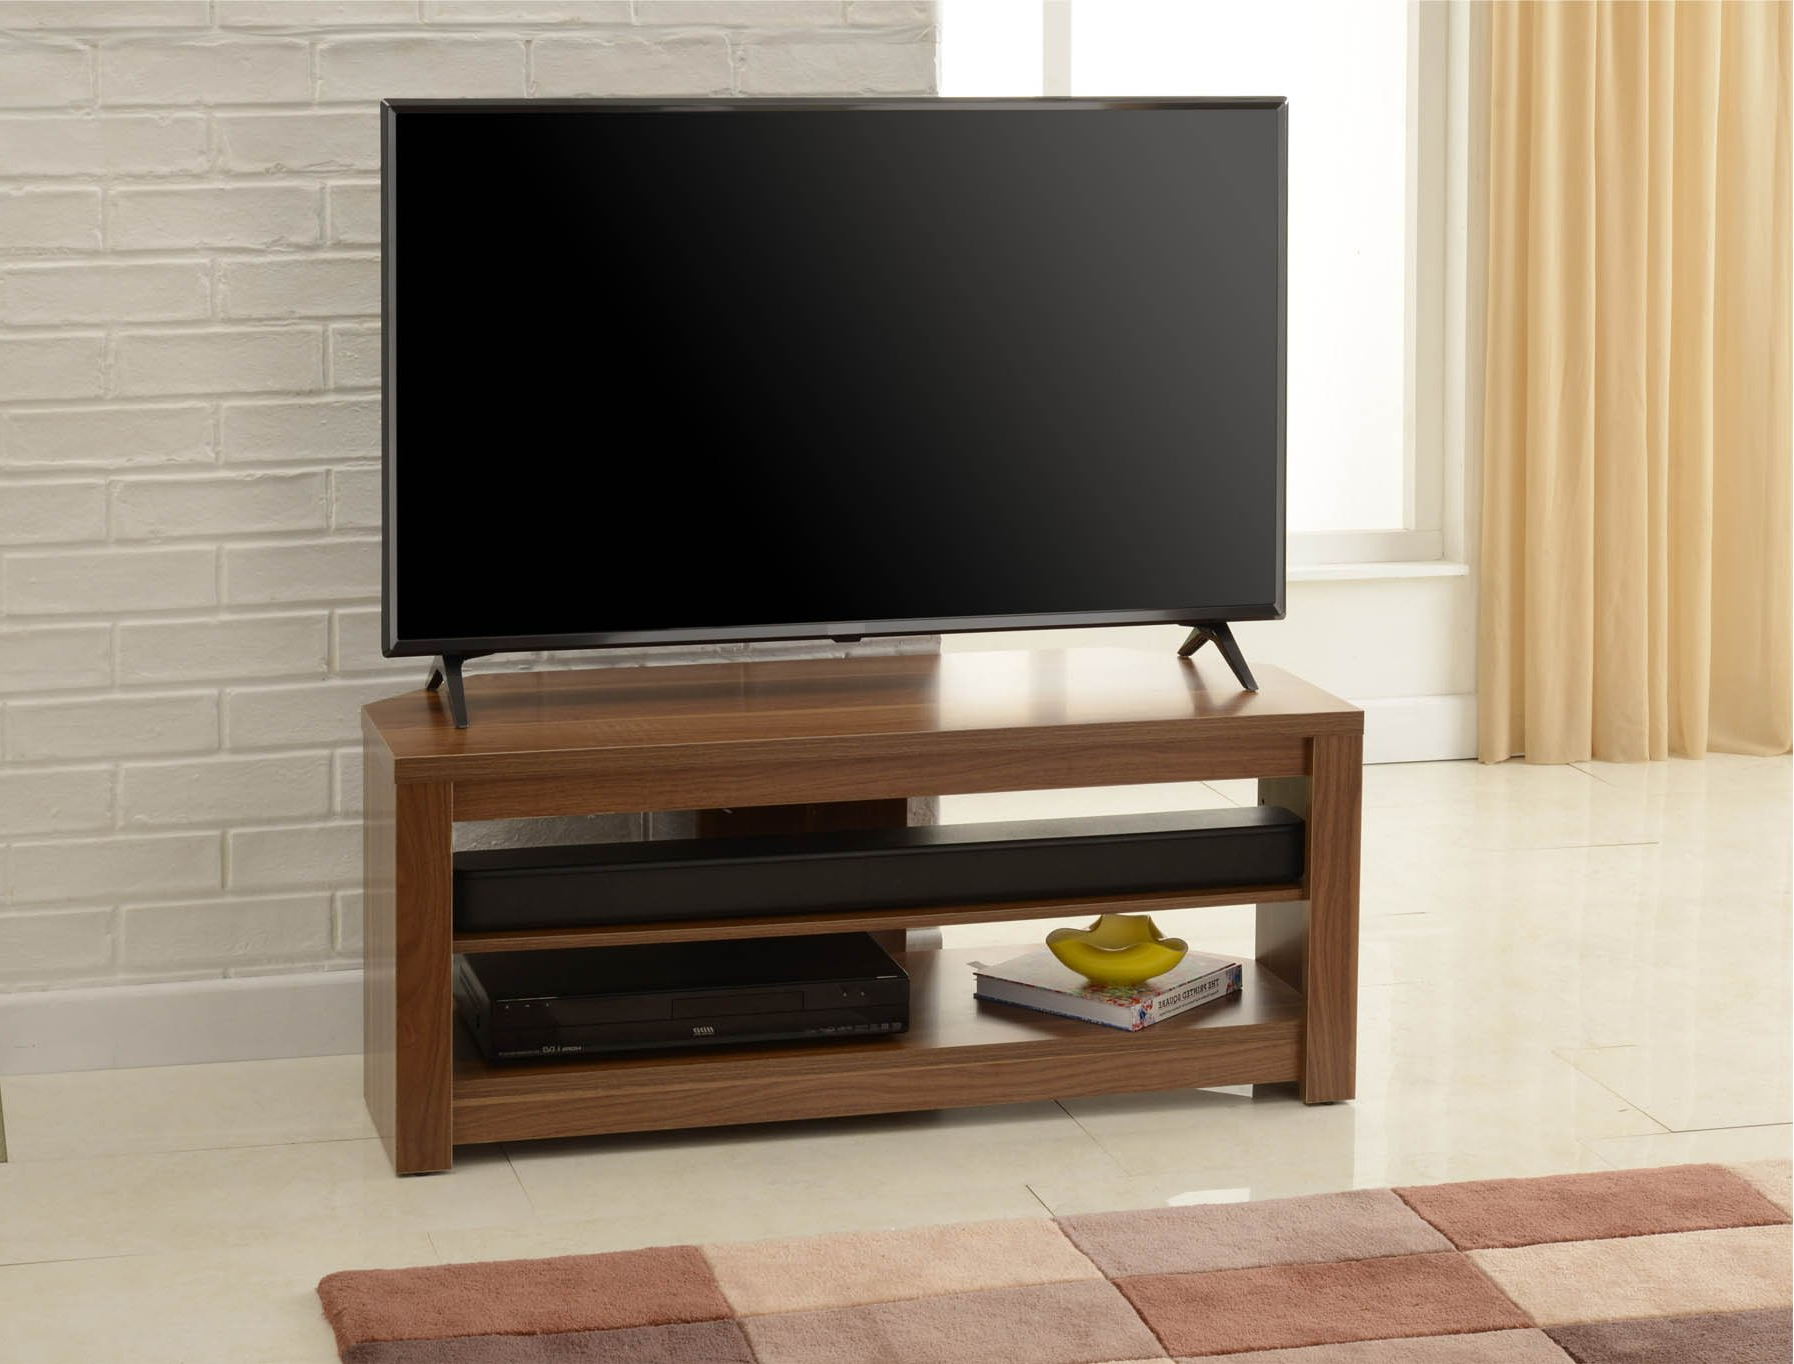 """Tnw Memphis Tv Stand Walnut Corner For Up To 50 Inch Tvs Intended For Mission Corner Tv Stands For Tvs Up To 38"""" (View 4 of 20)"""